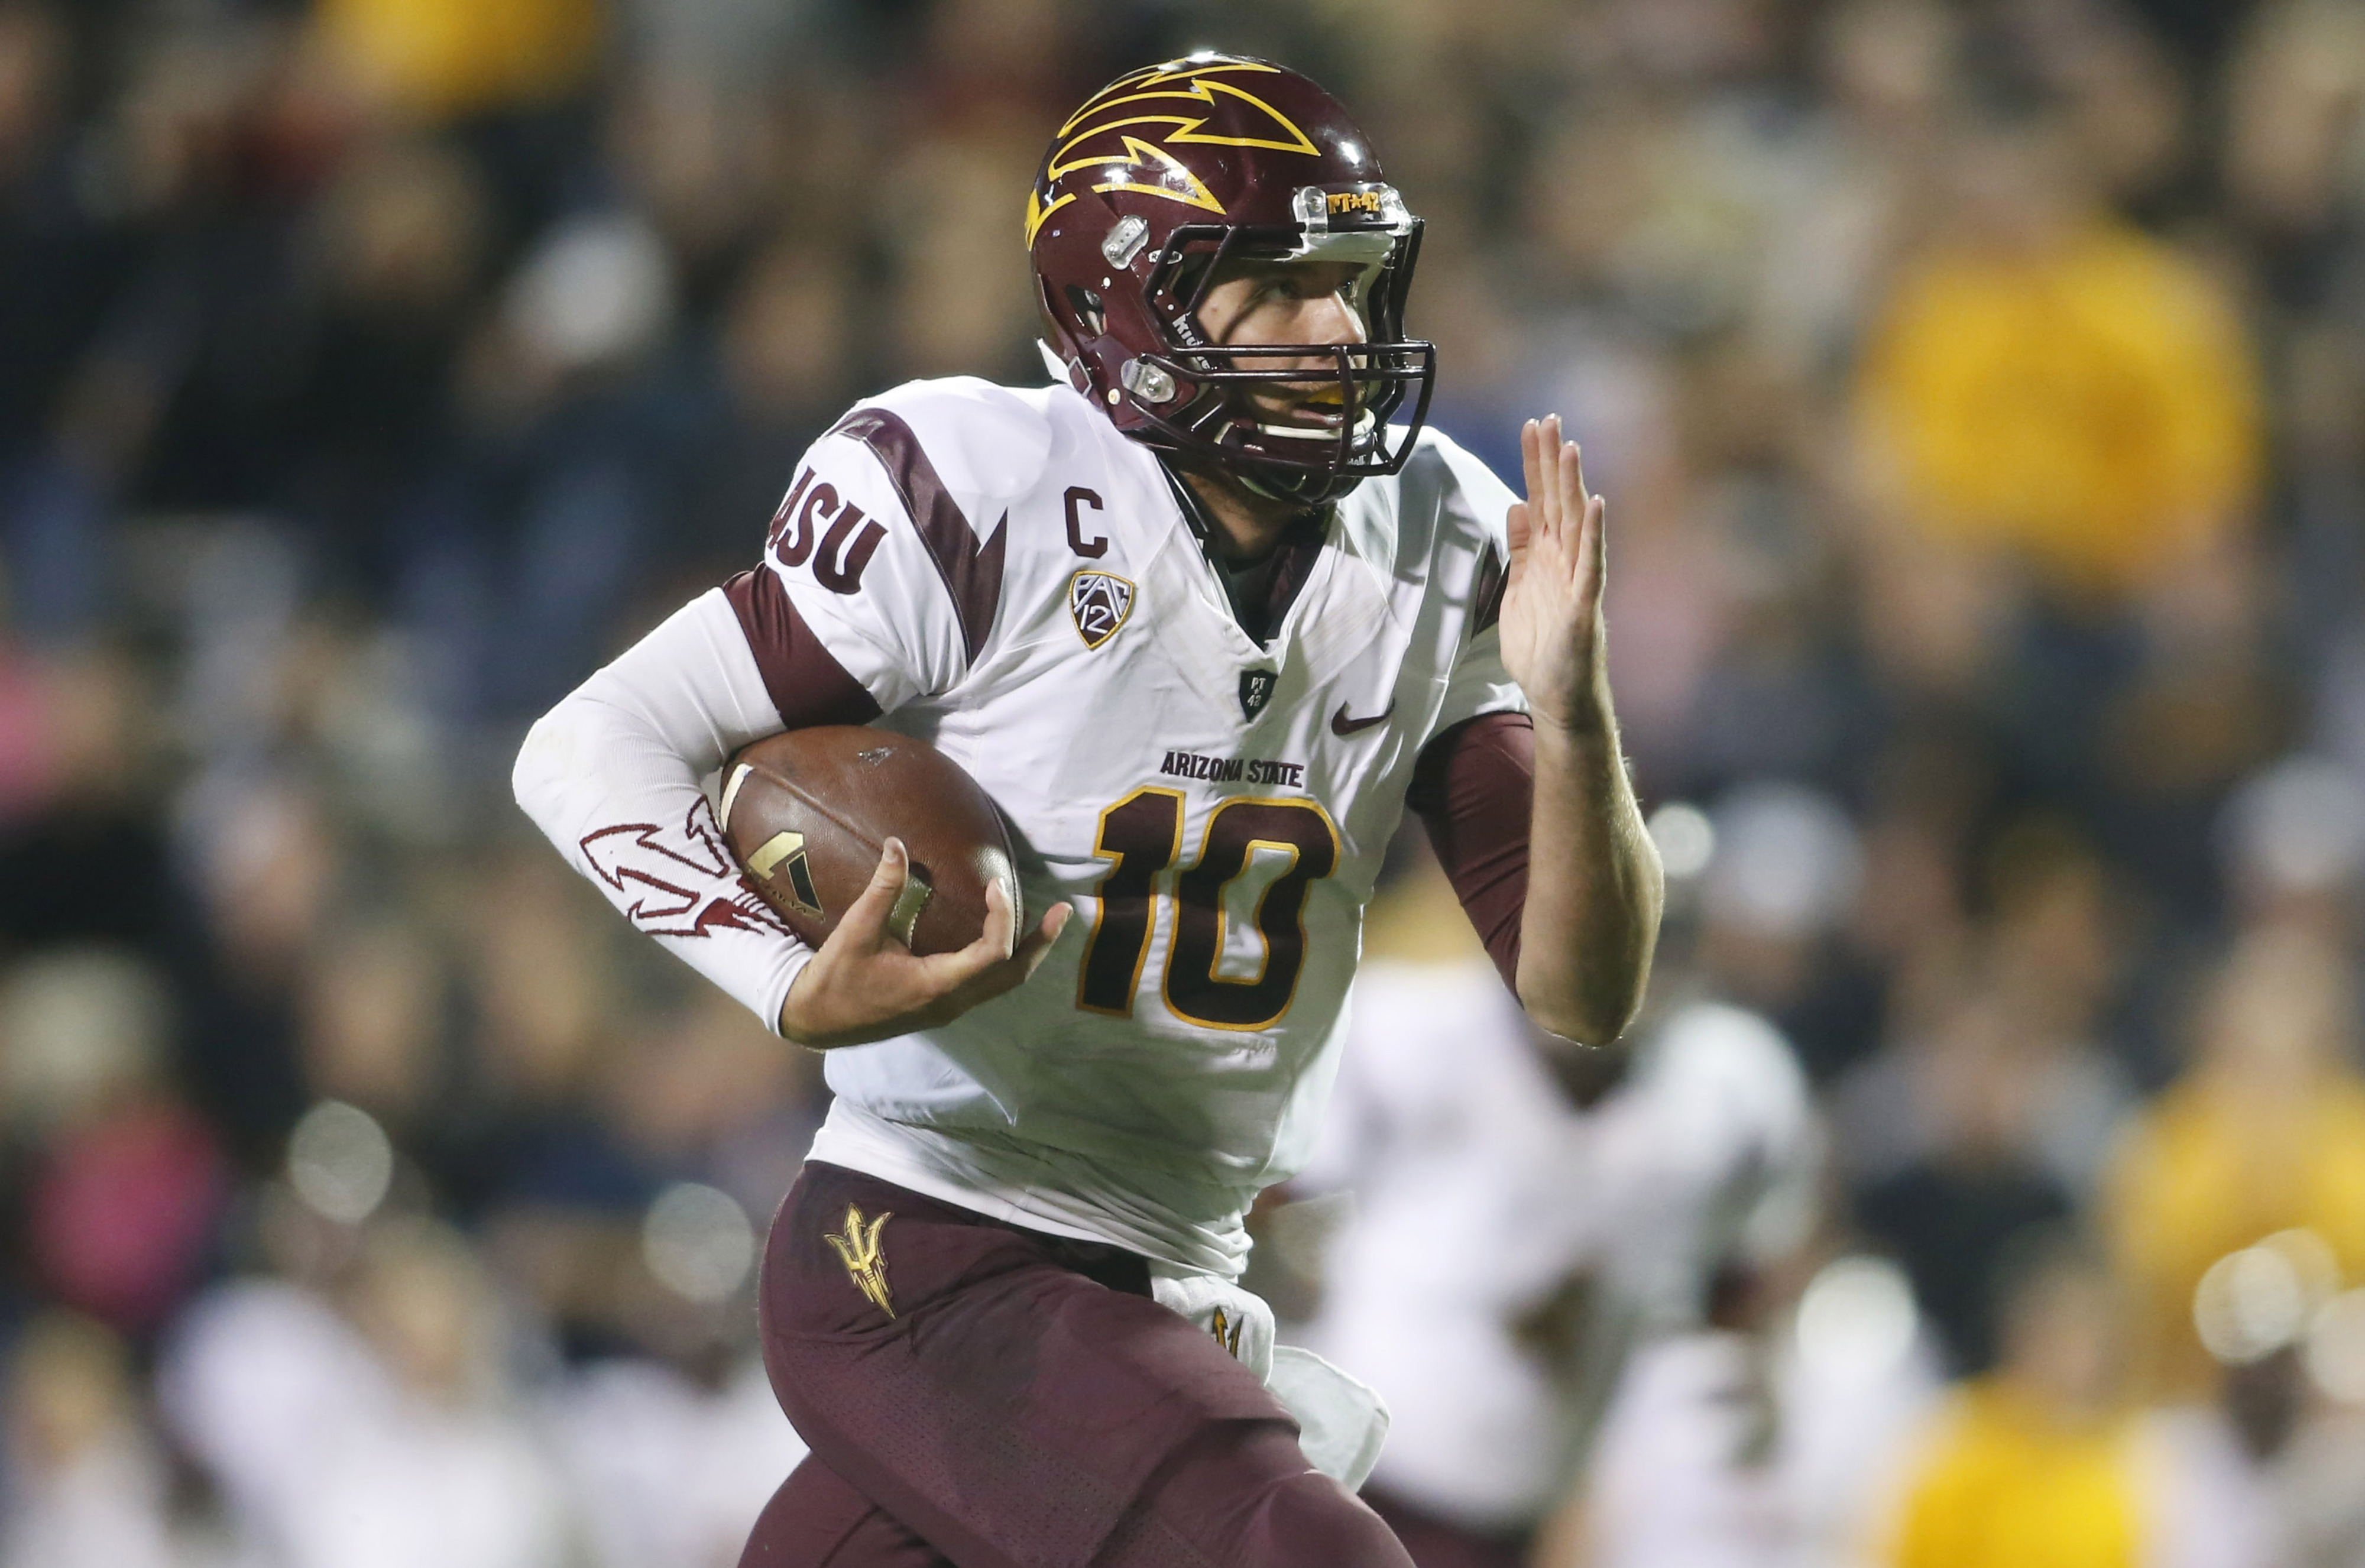 Arizona State quarterback Taylor Kelly will look to extend the Sun Devils' dominance of the Utes.